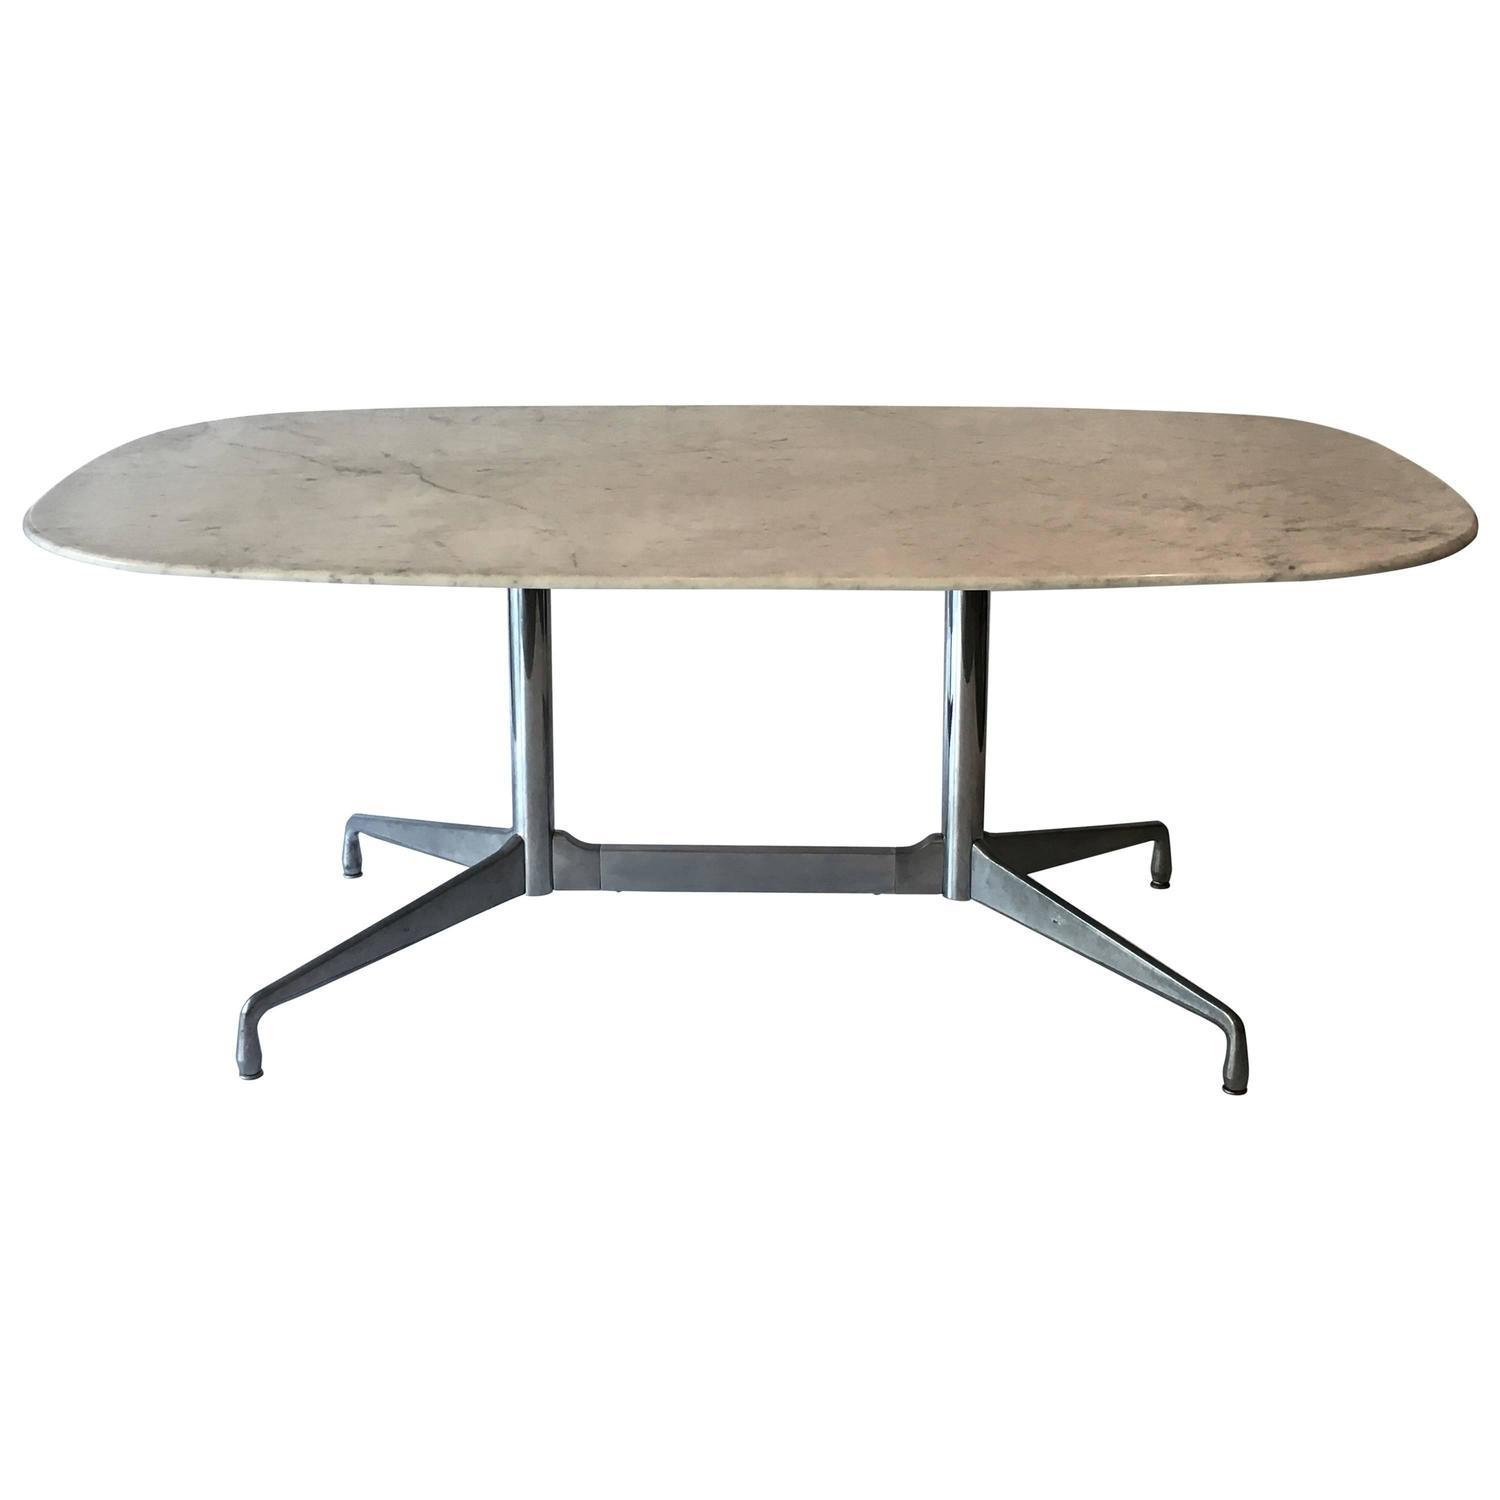 Eames Marble Coffee Table: Eames For Herman Miller White Marble Dining Table